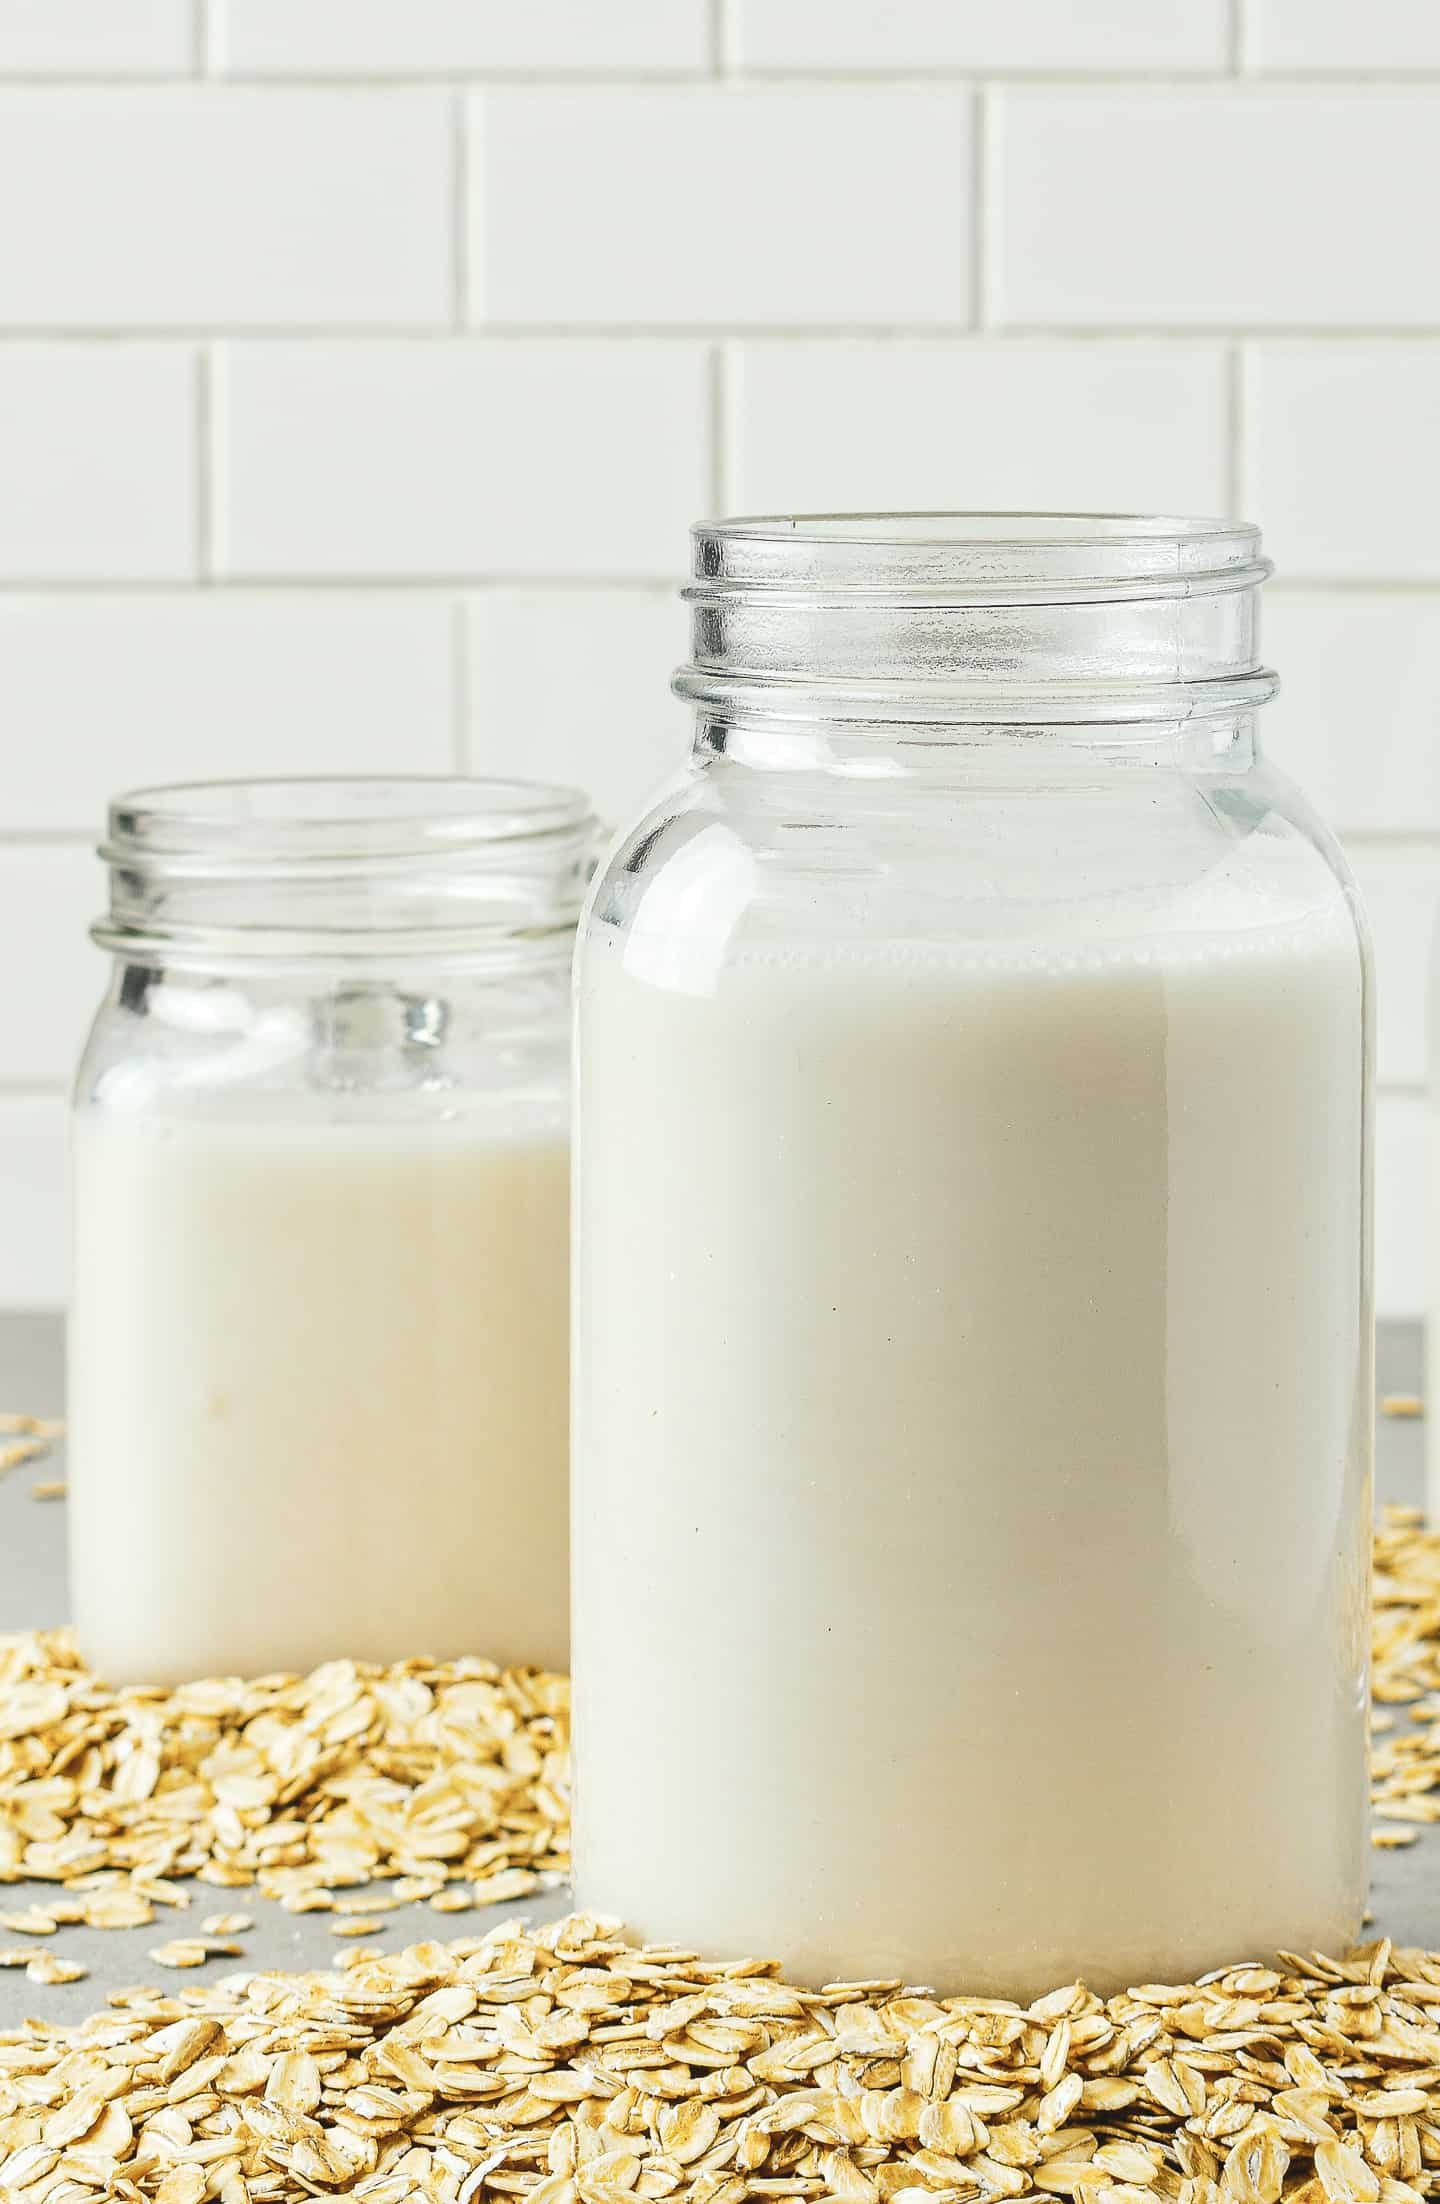 Two jars of oat milk with oats on table.